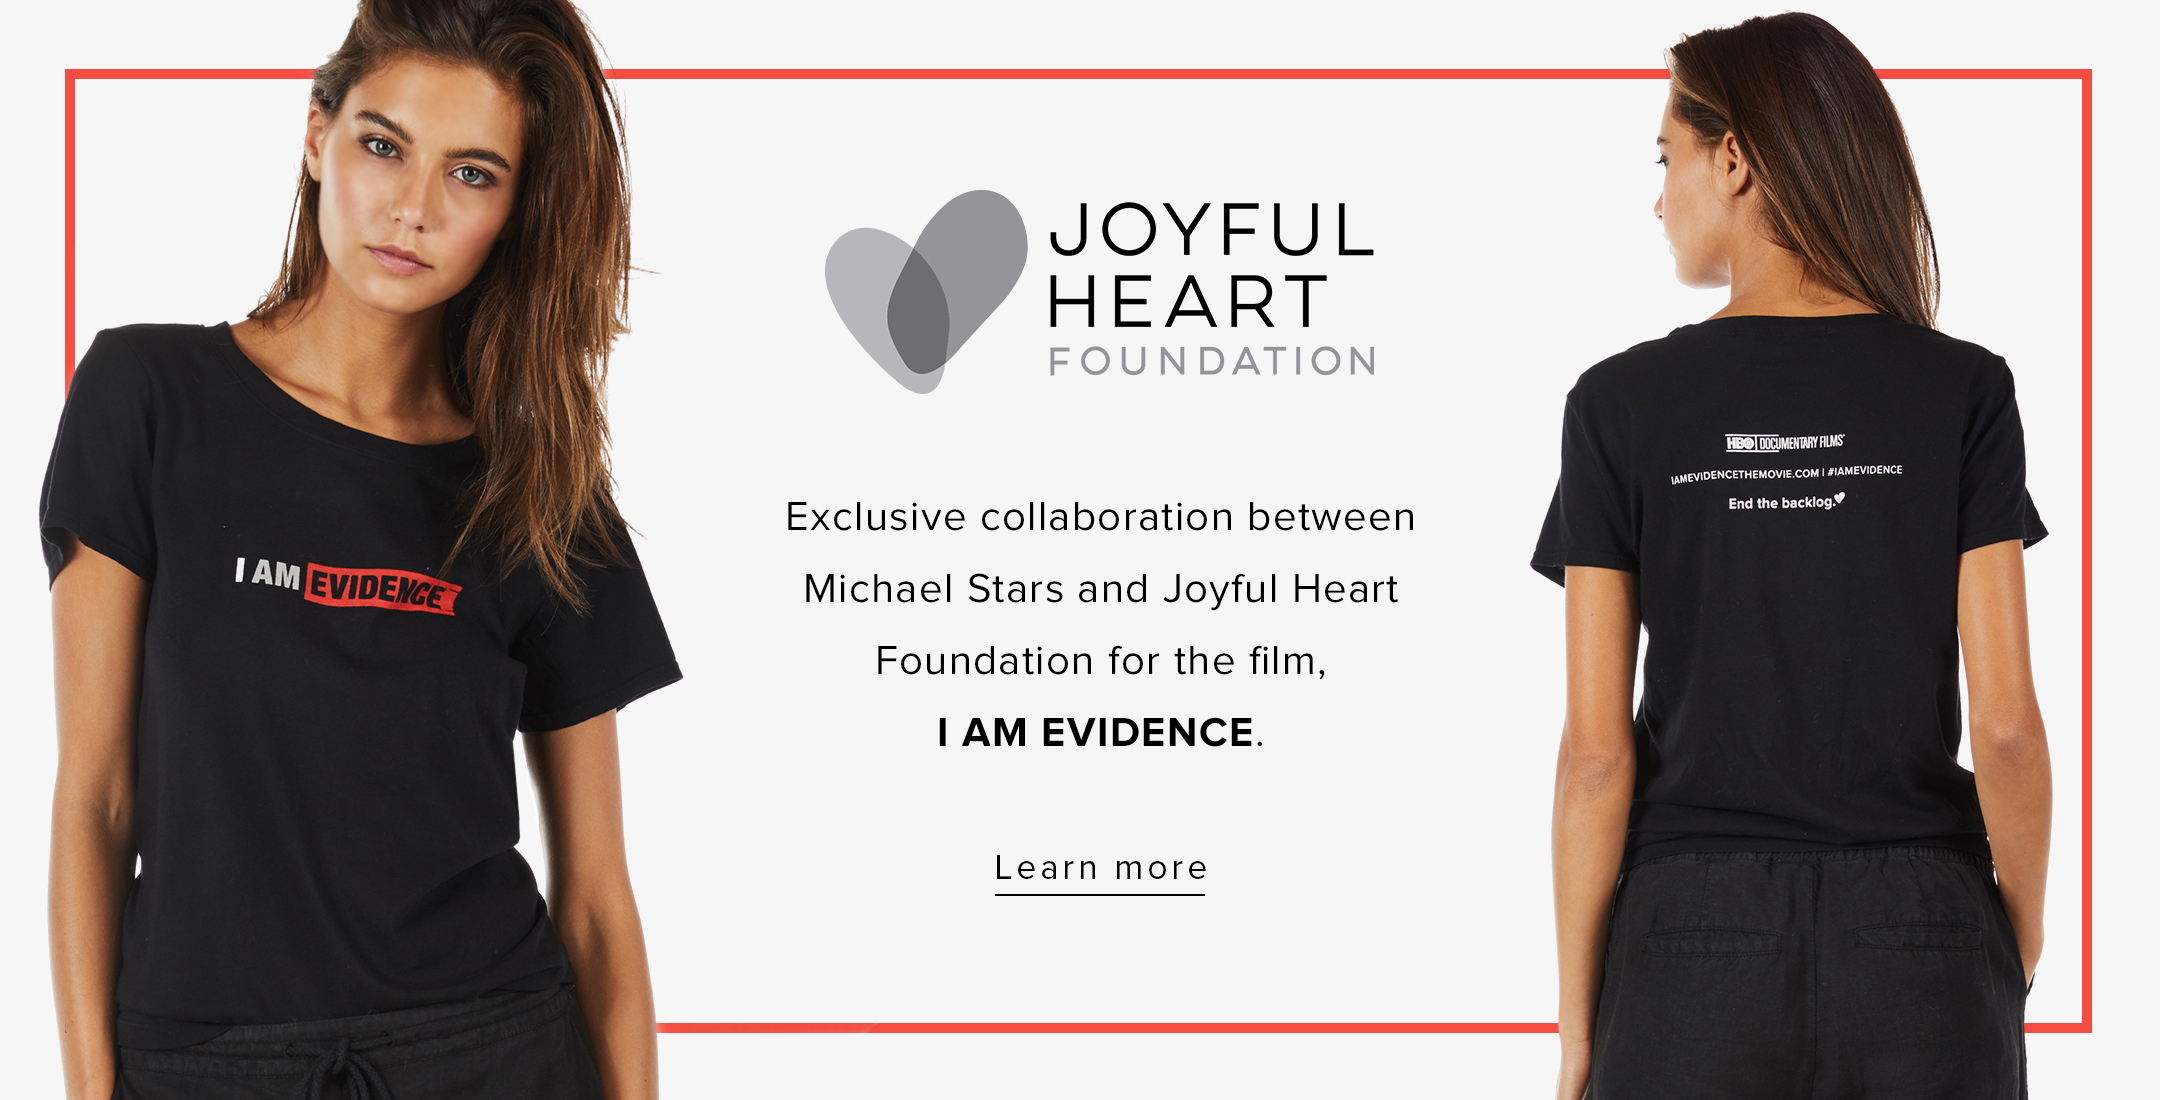 Joyful Heart Foundation CTA